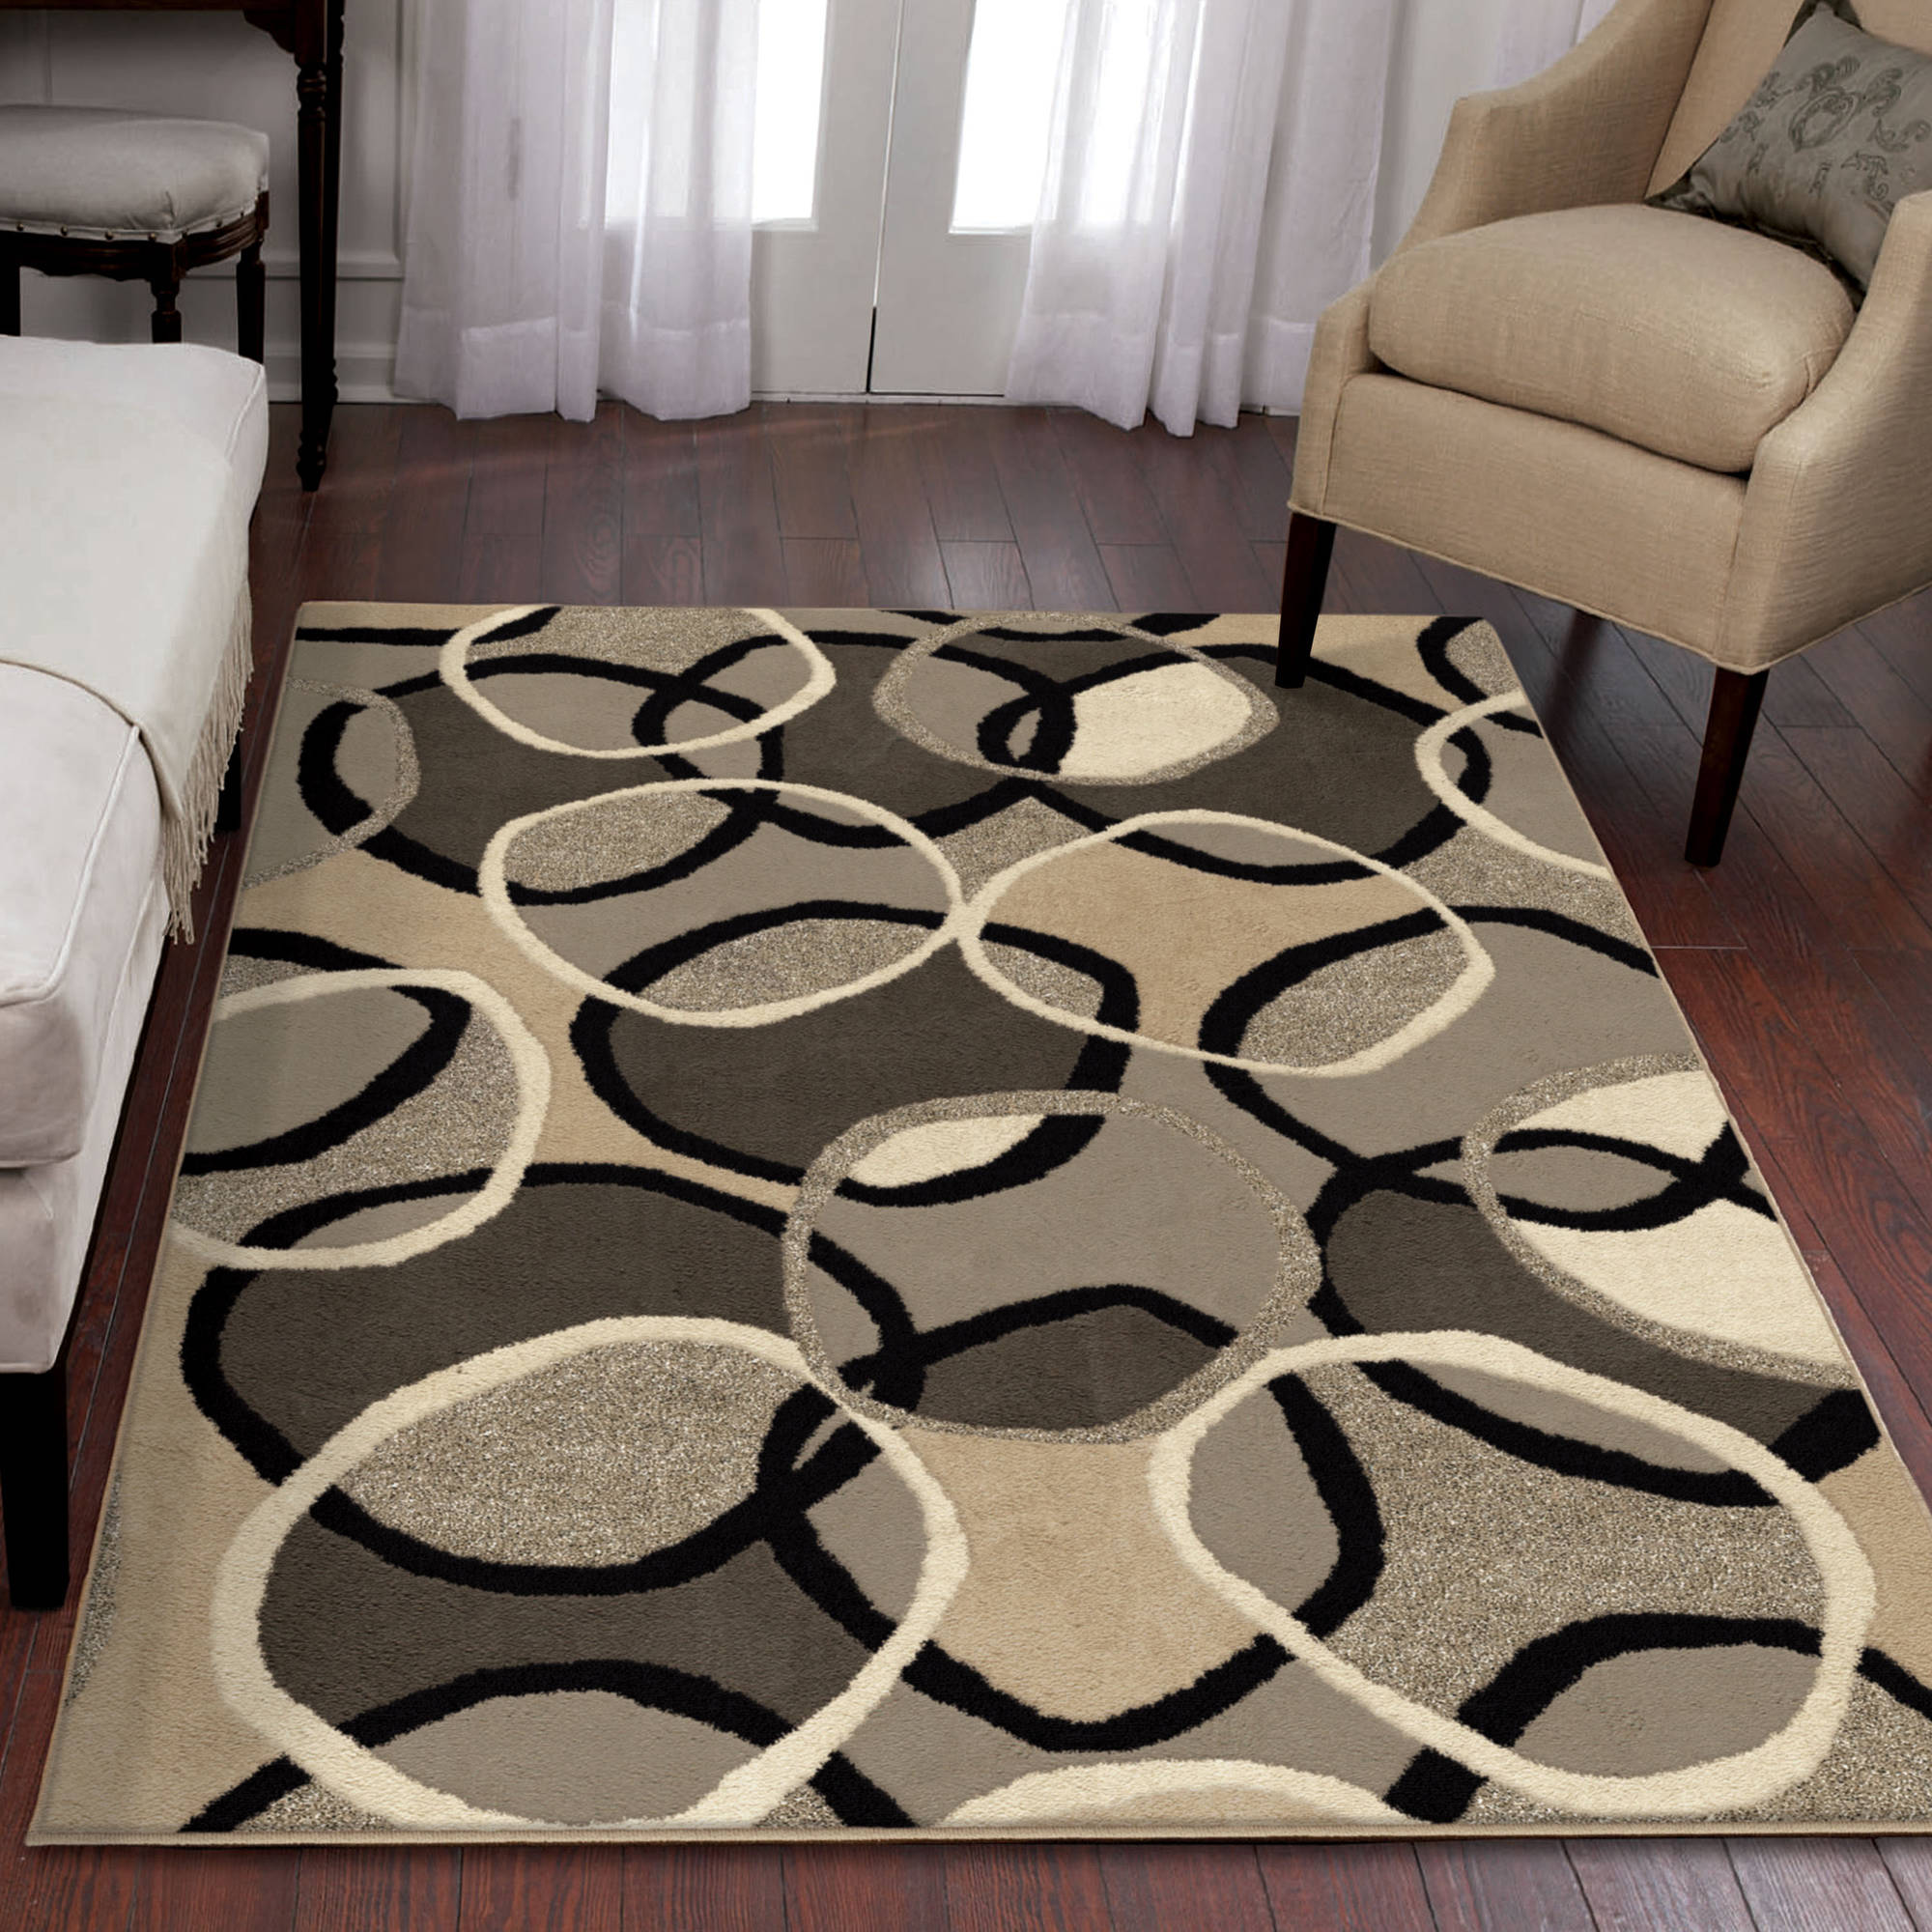 Elegant Orian Rugs Overlap Multi Colored Area Rug